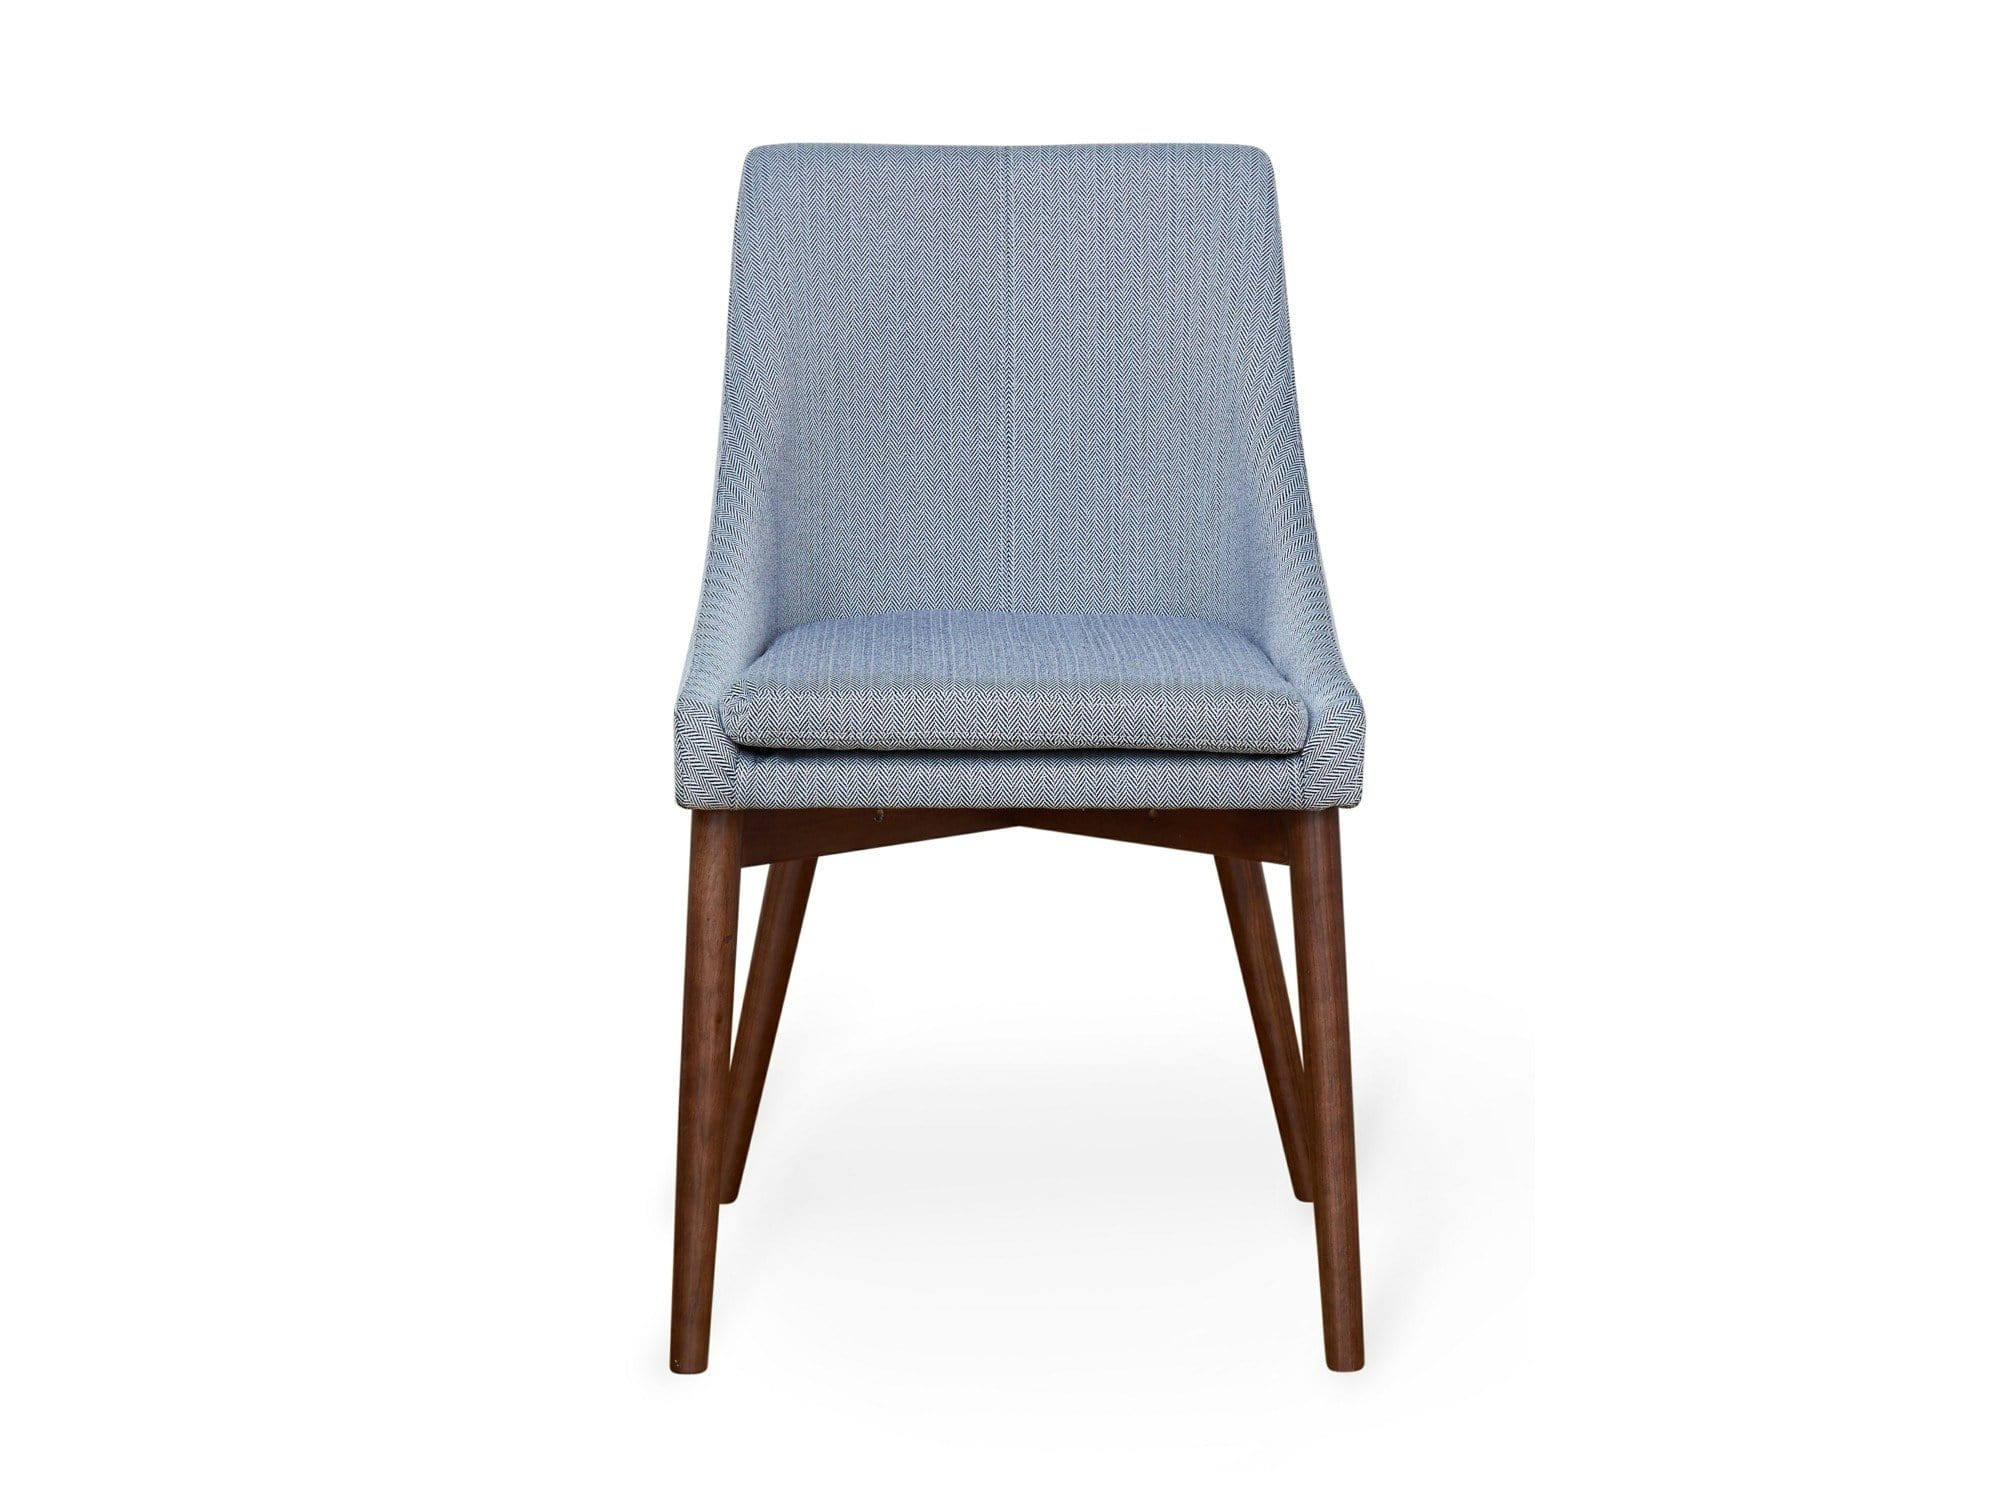 Contemporary walnut dining chairs with slate grey linen fabric upholstery